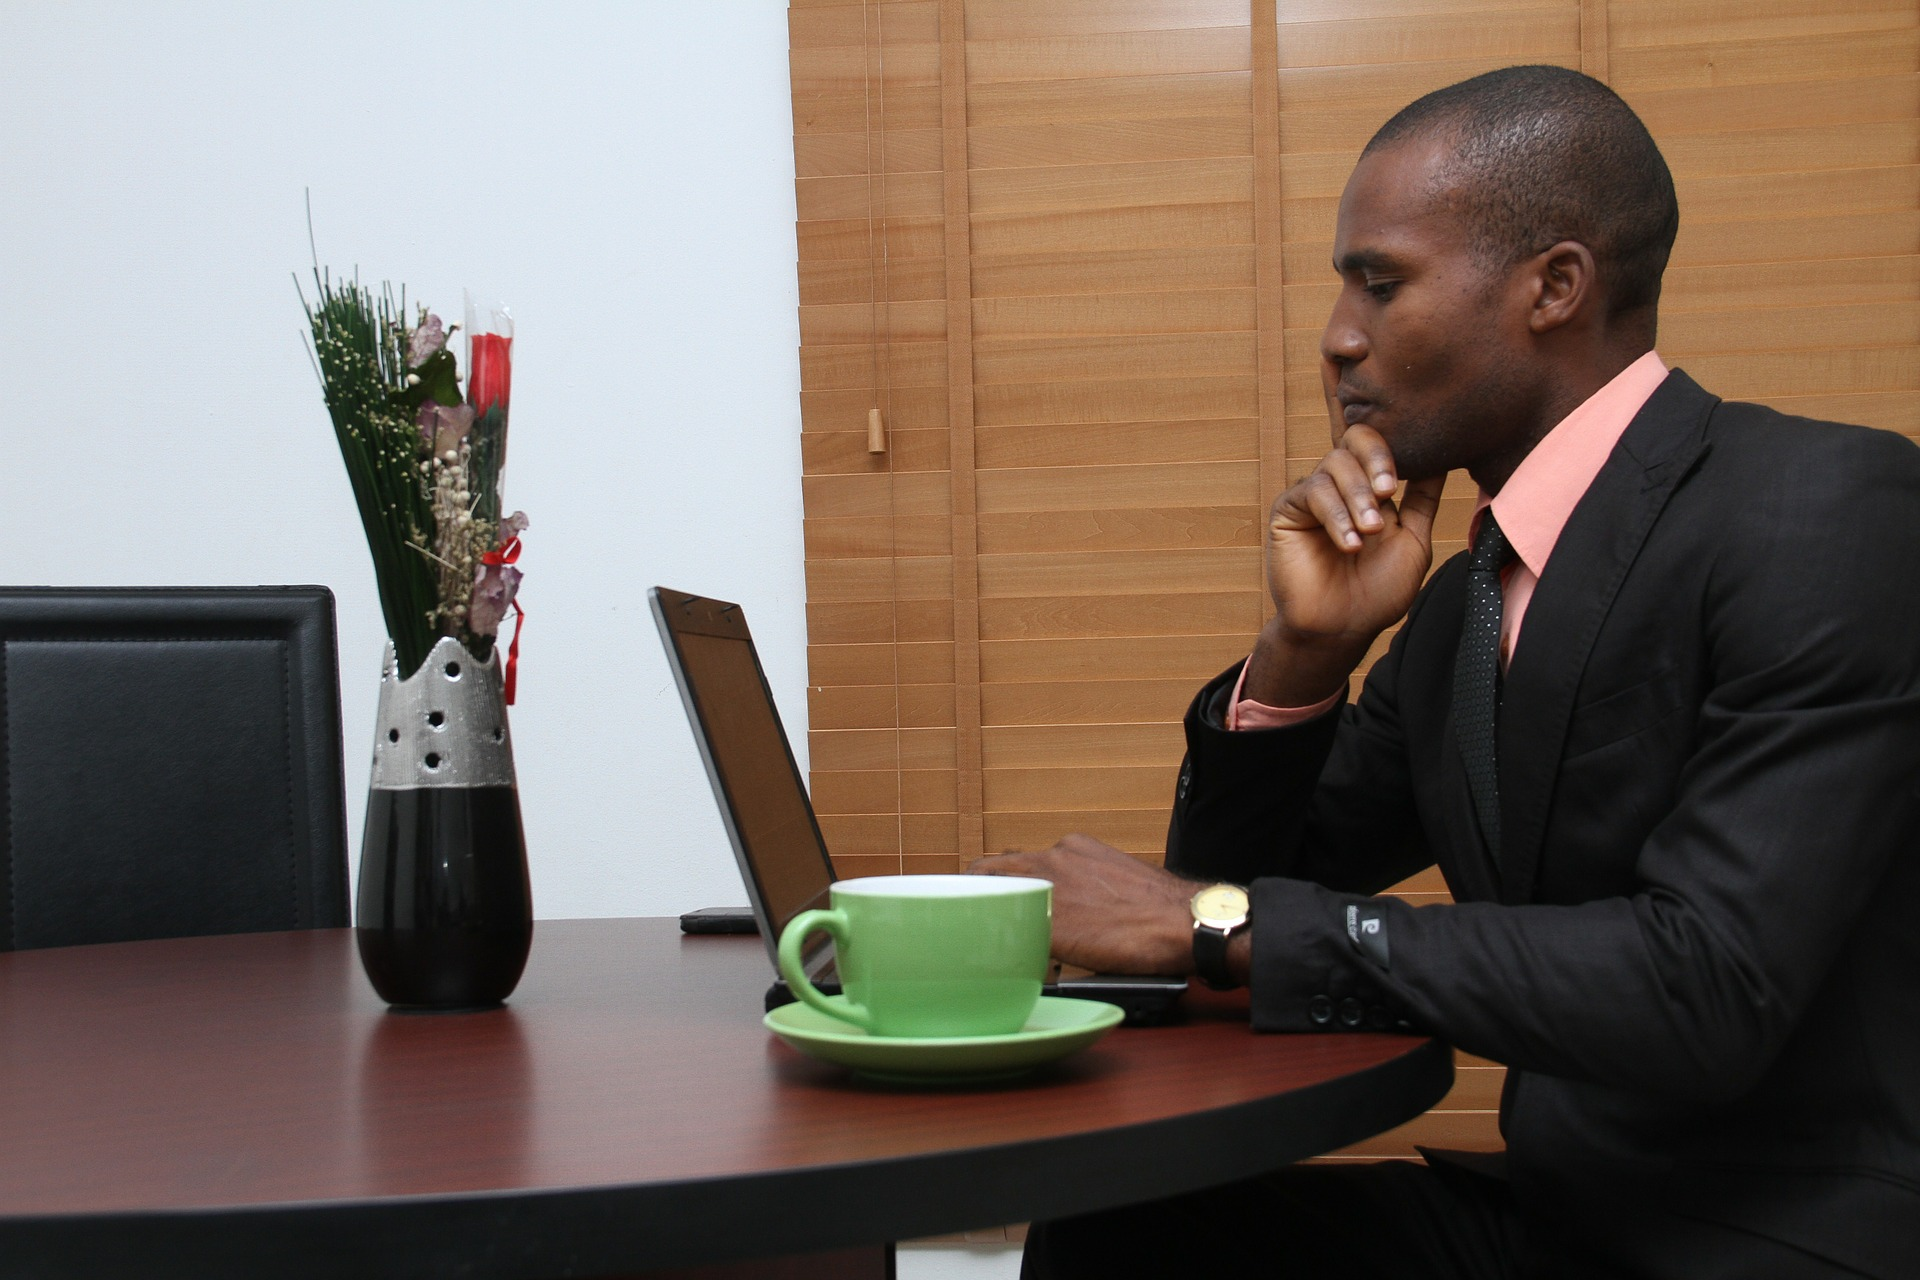 securing employment opportunities